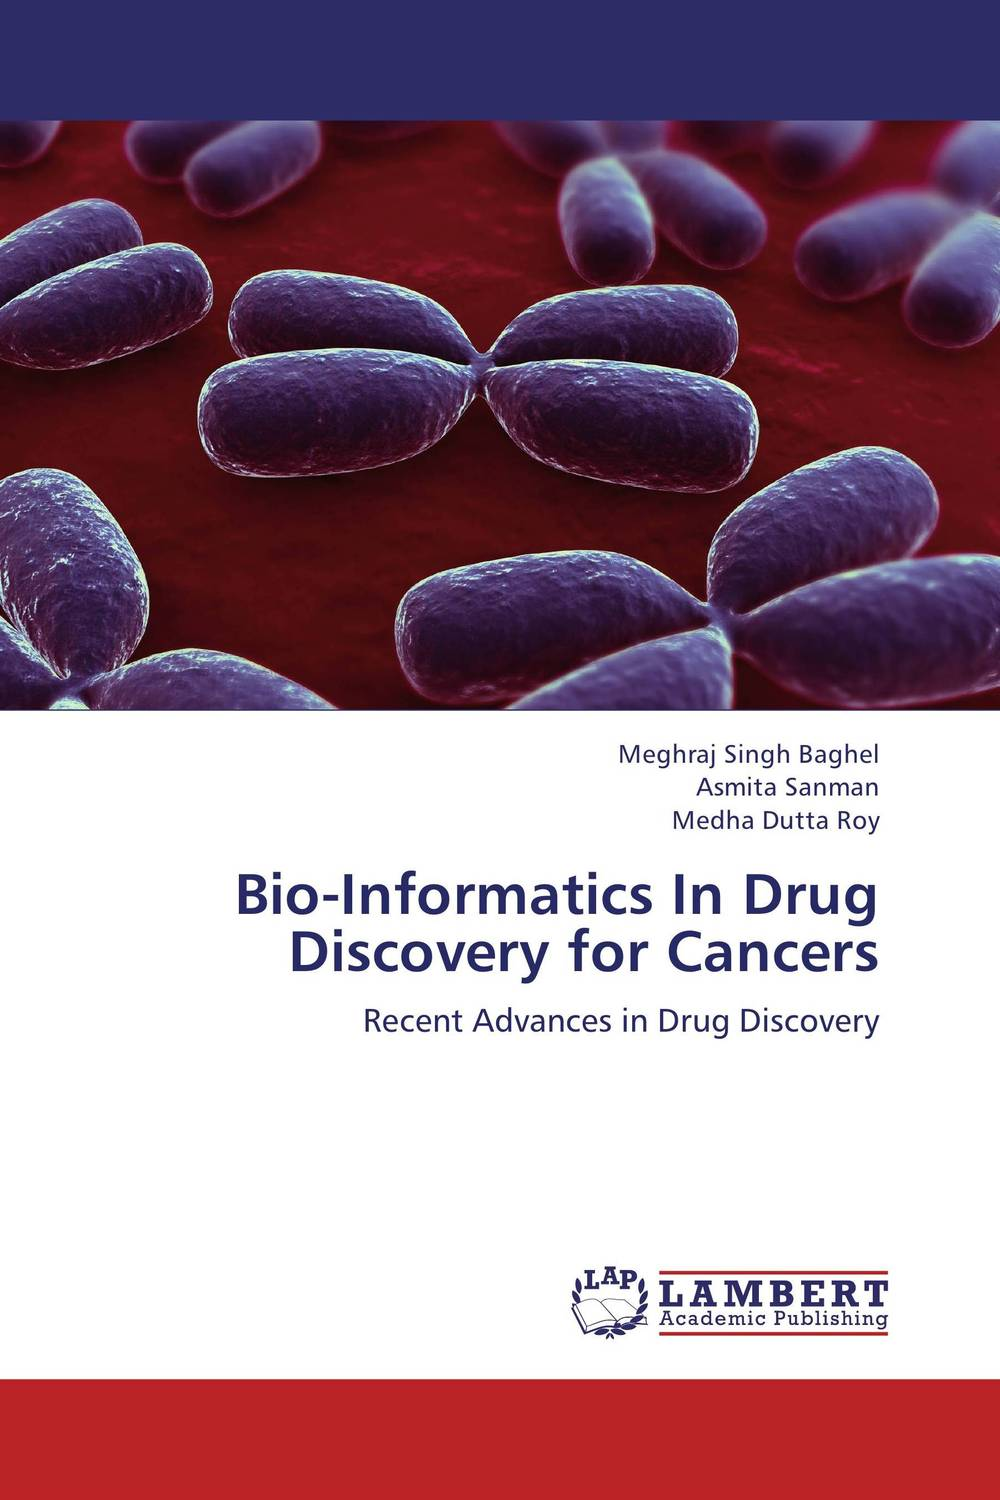 Bio-Informatics In Drug Discovery for Cancers david gichoya government informatics